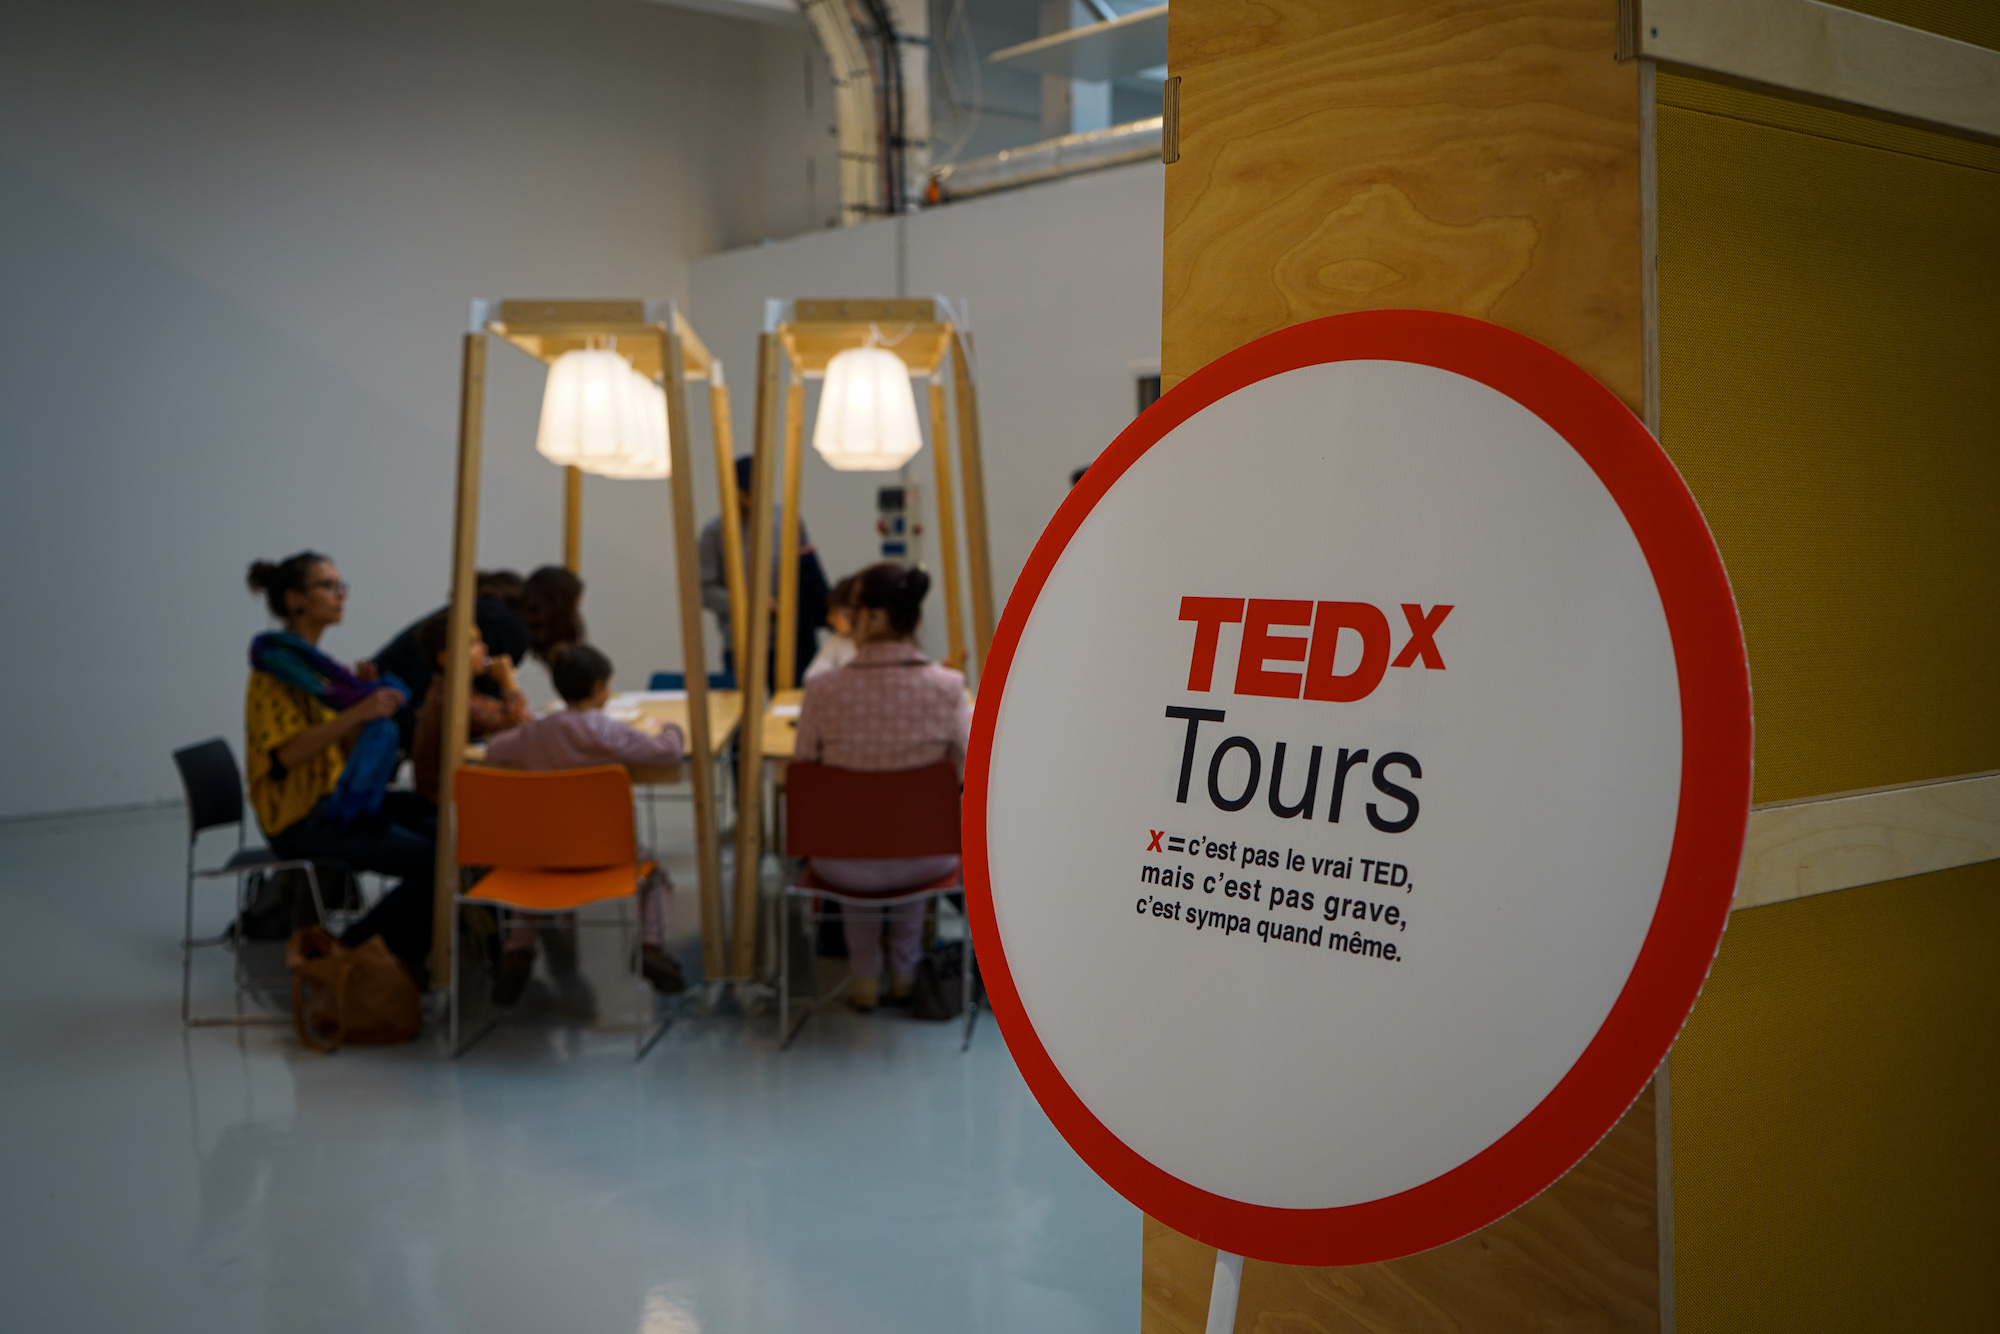 tedxtours-adventures_48854683481_o